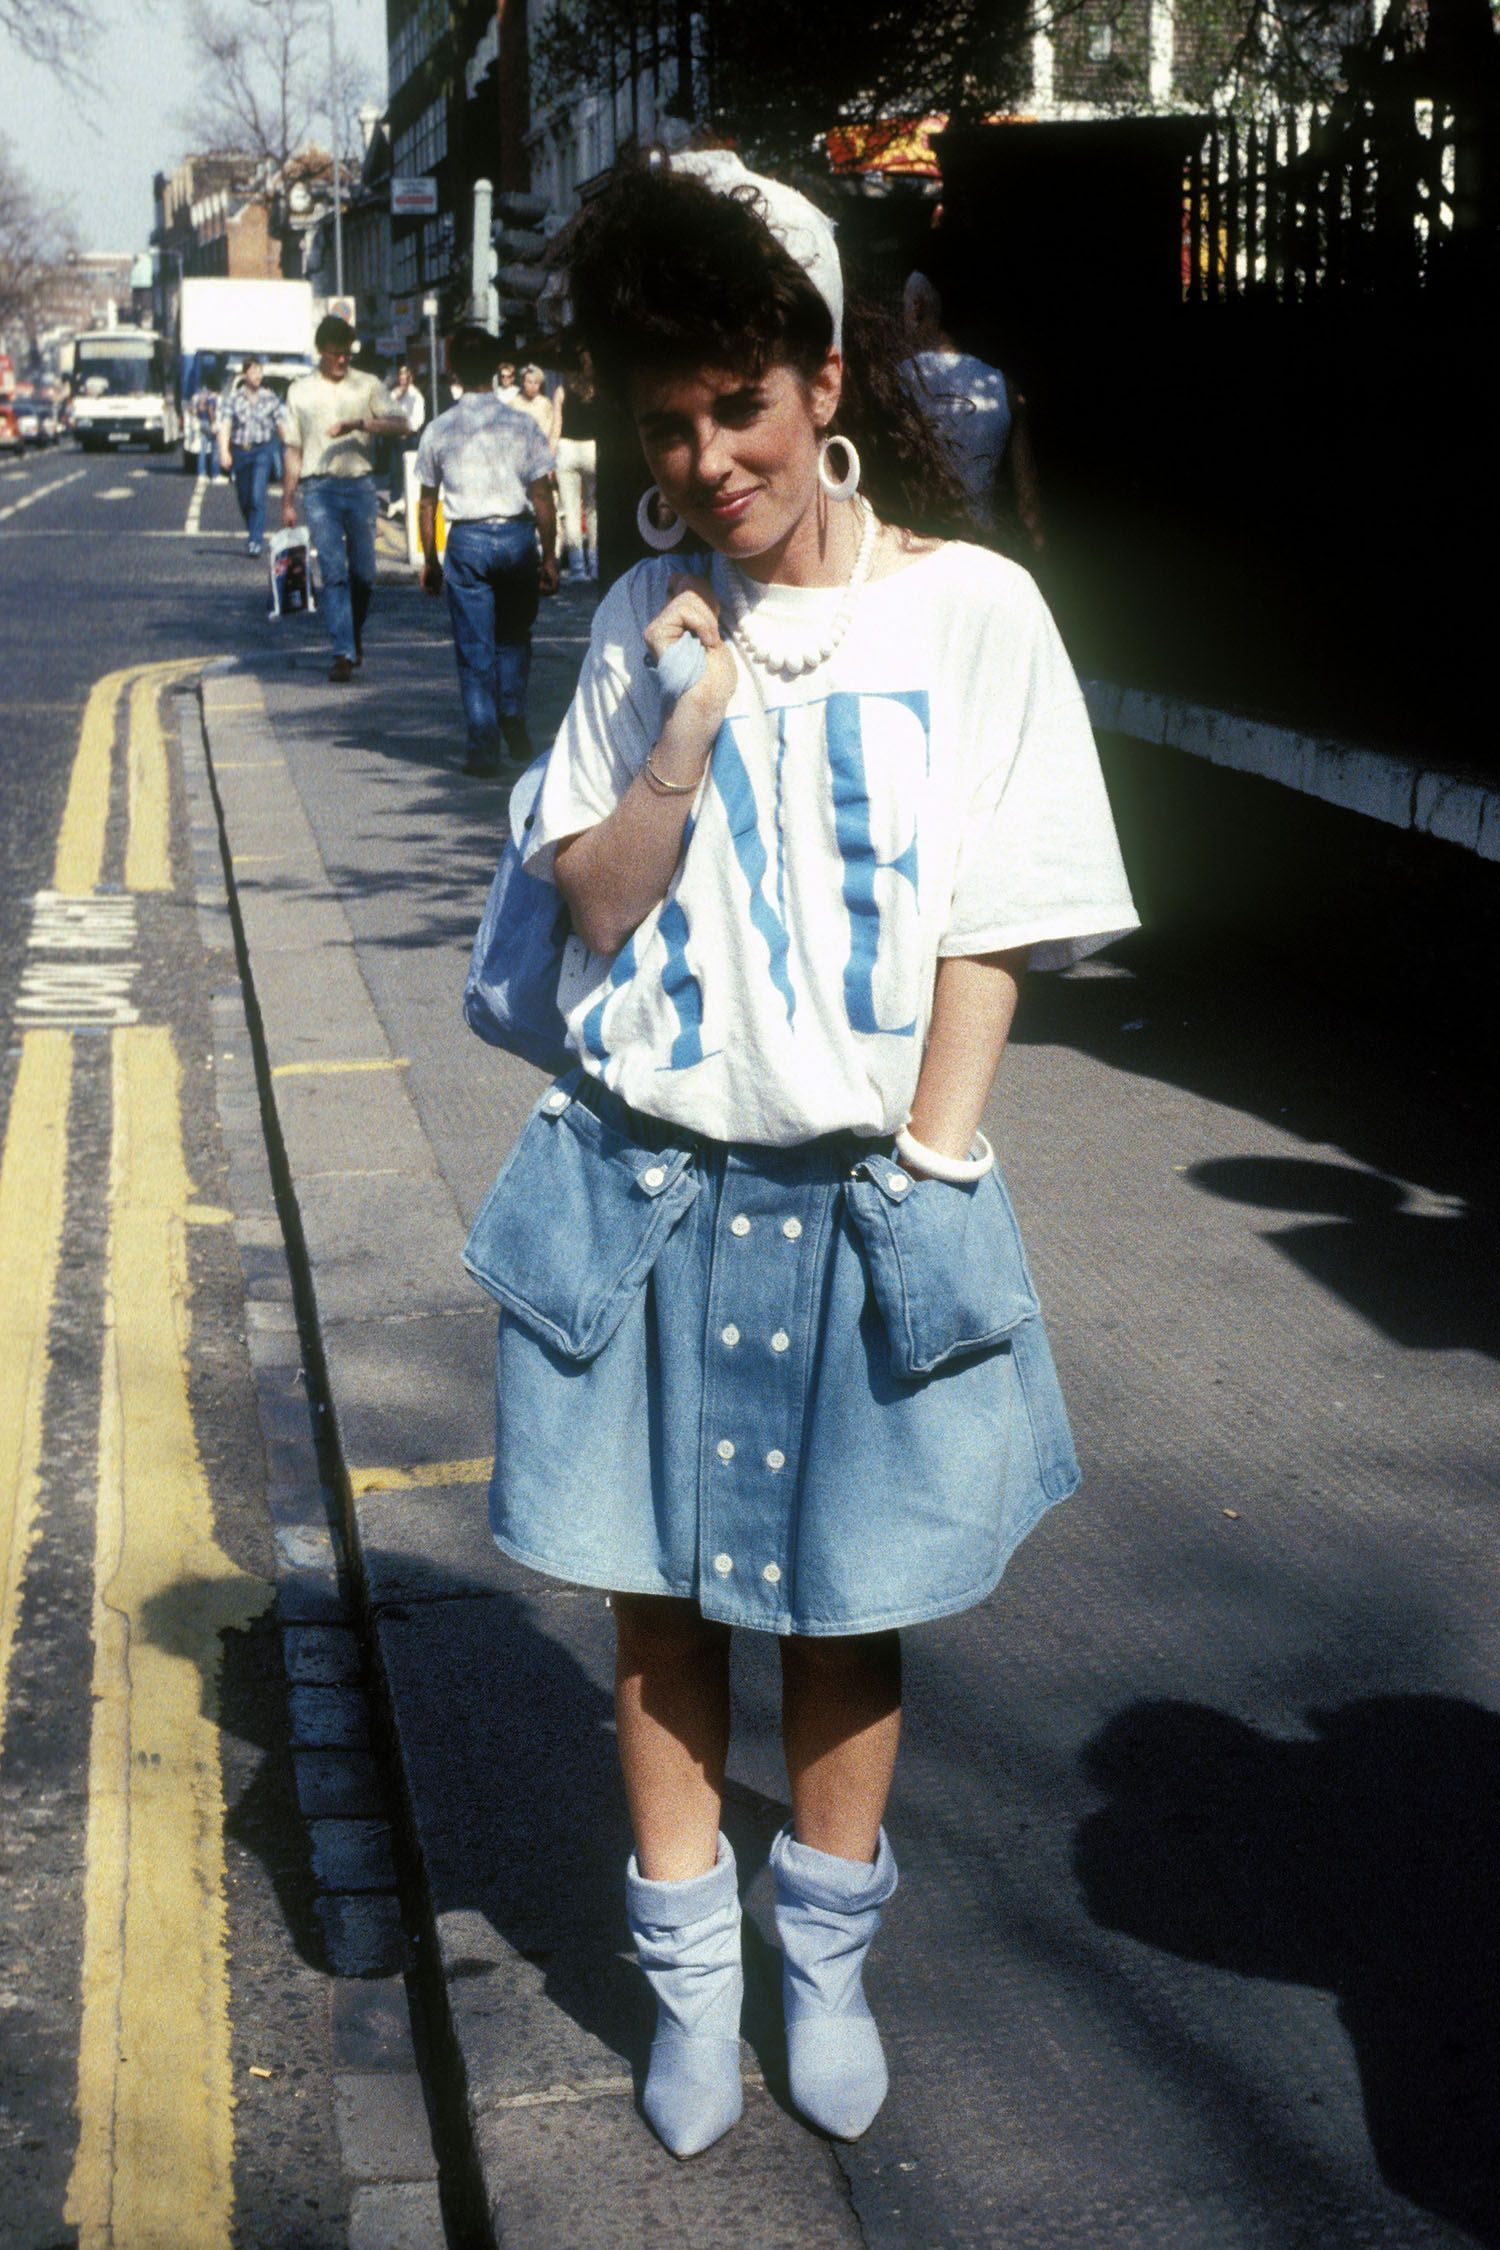 The Best of 80s Fashion   Vintage 80s Outfits and Fashion Trends